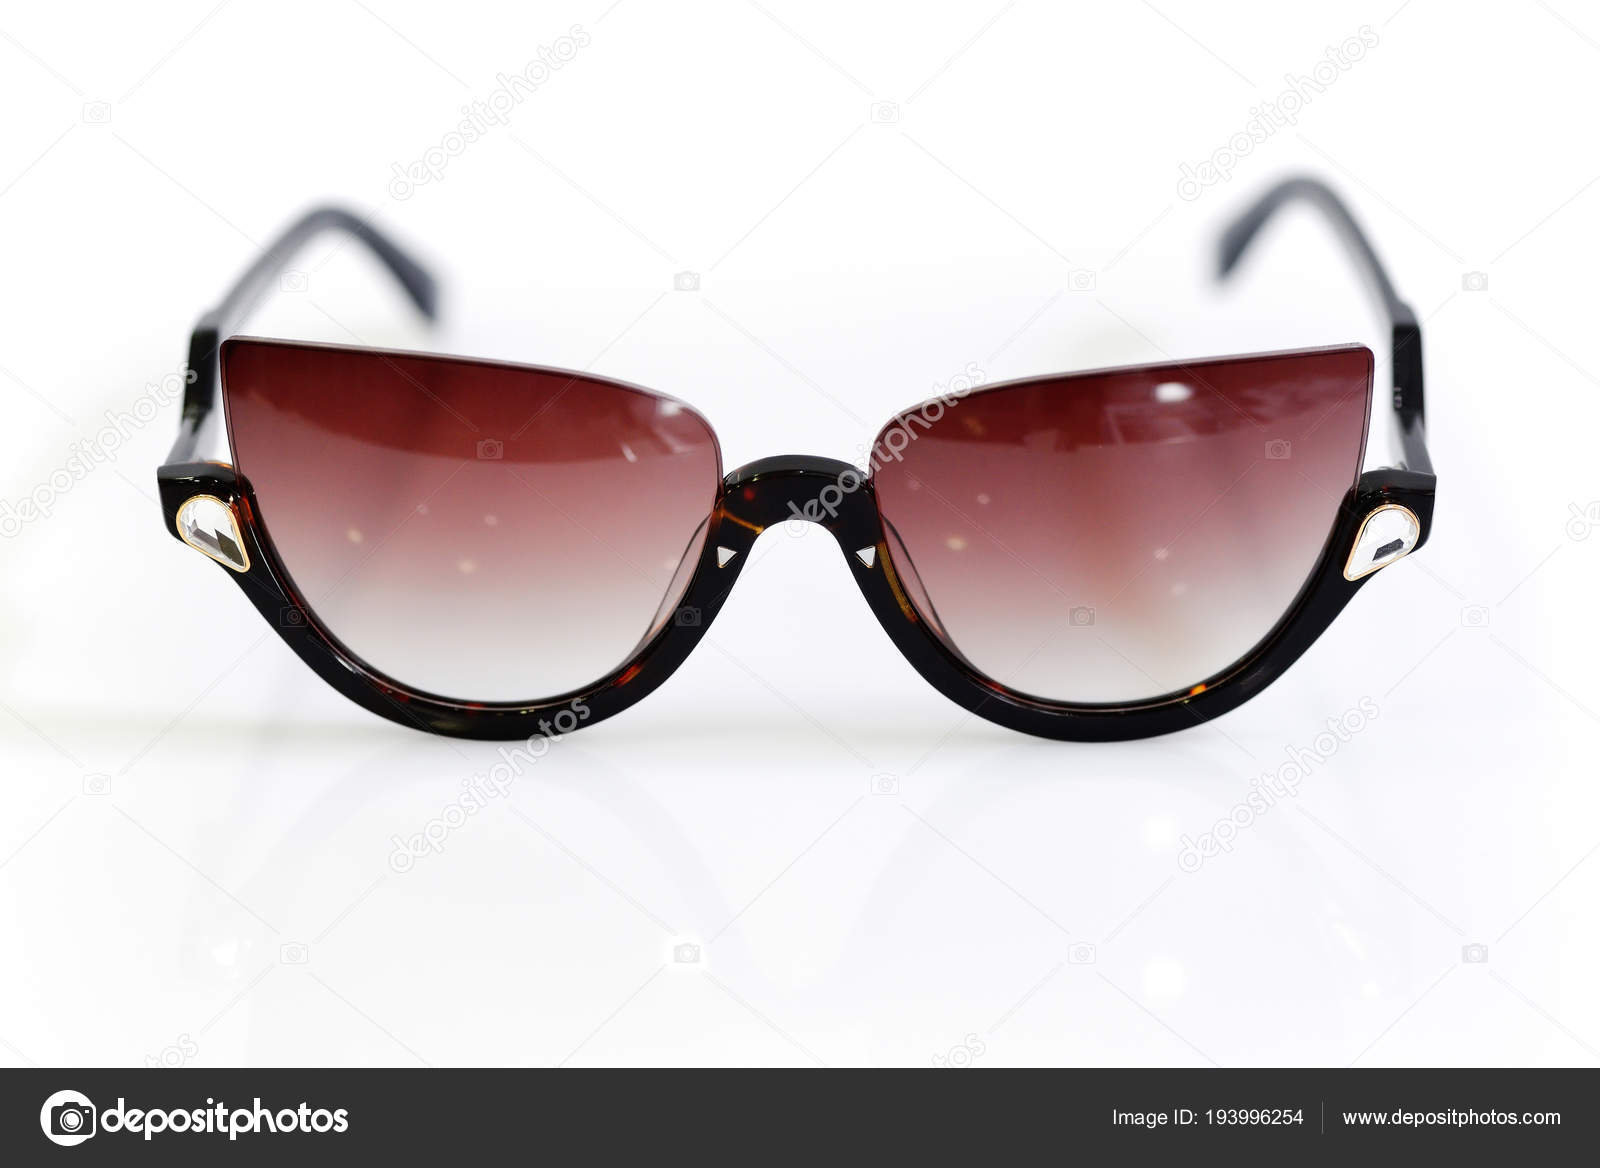 c6647350a Fashionable women's sunglasses on white background — Stock Photo ...